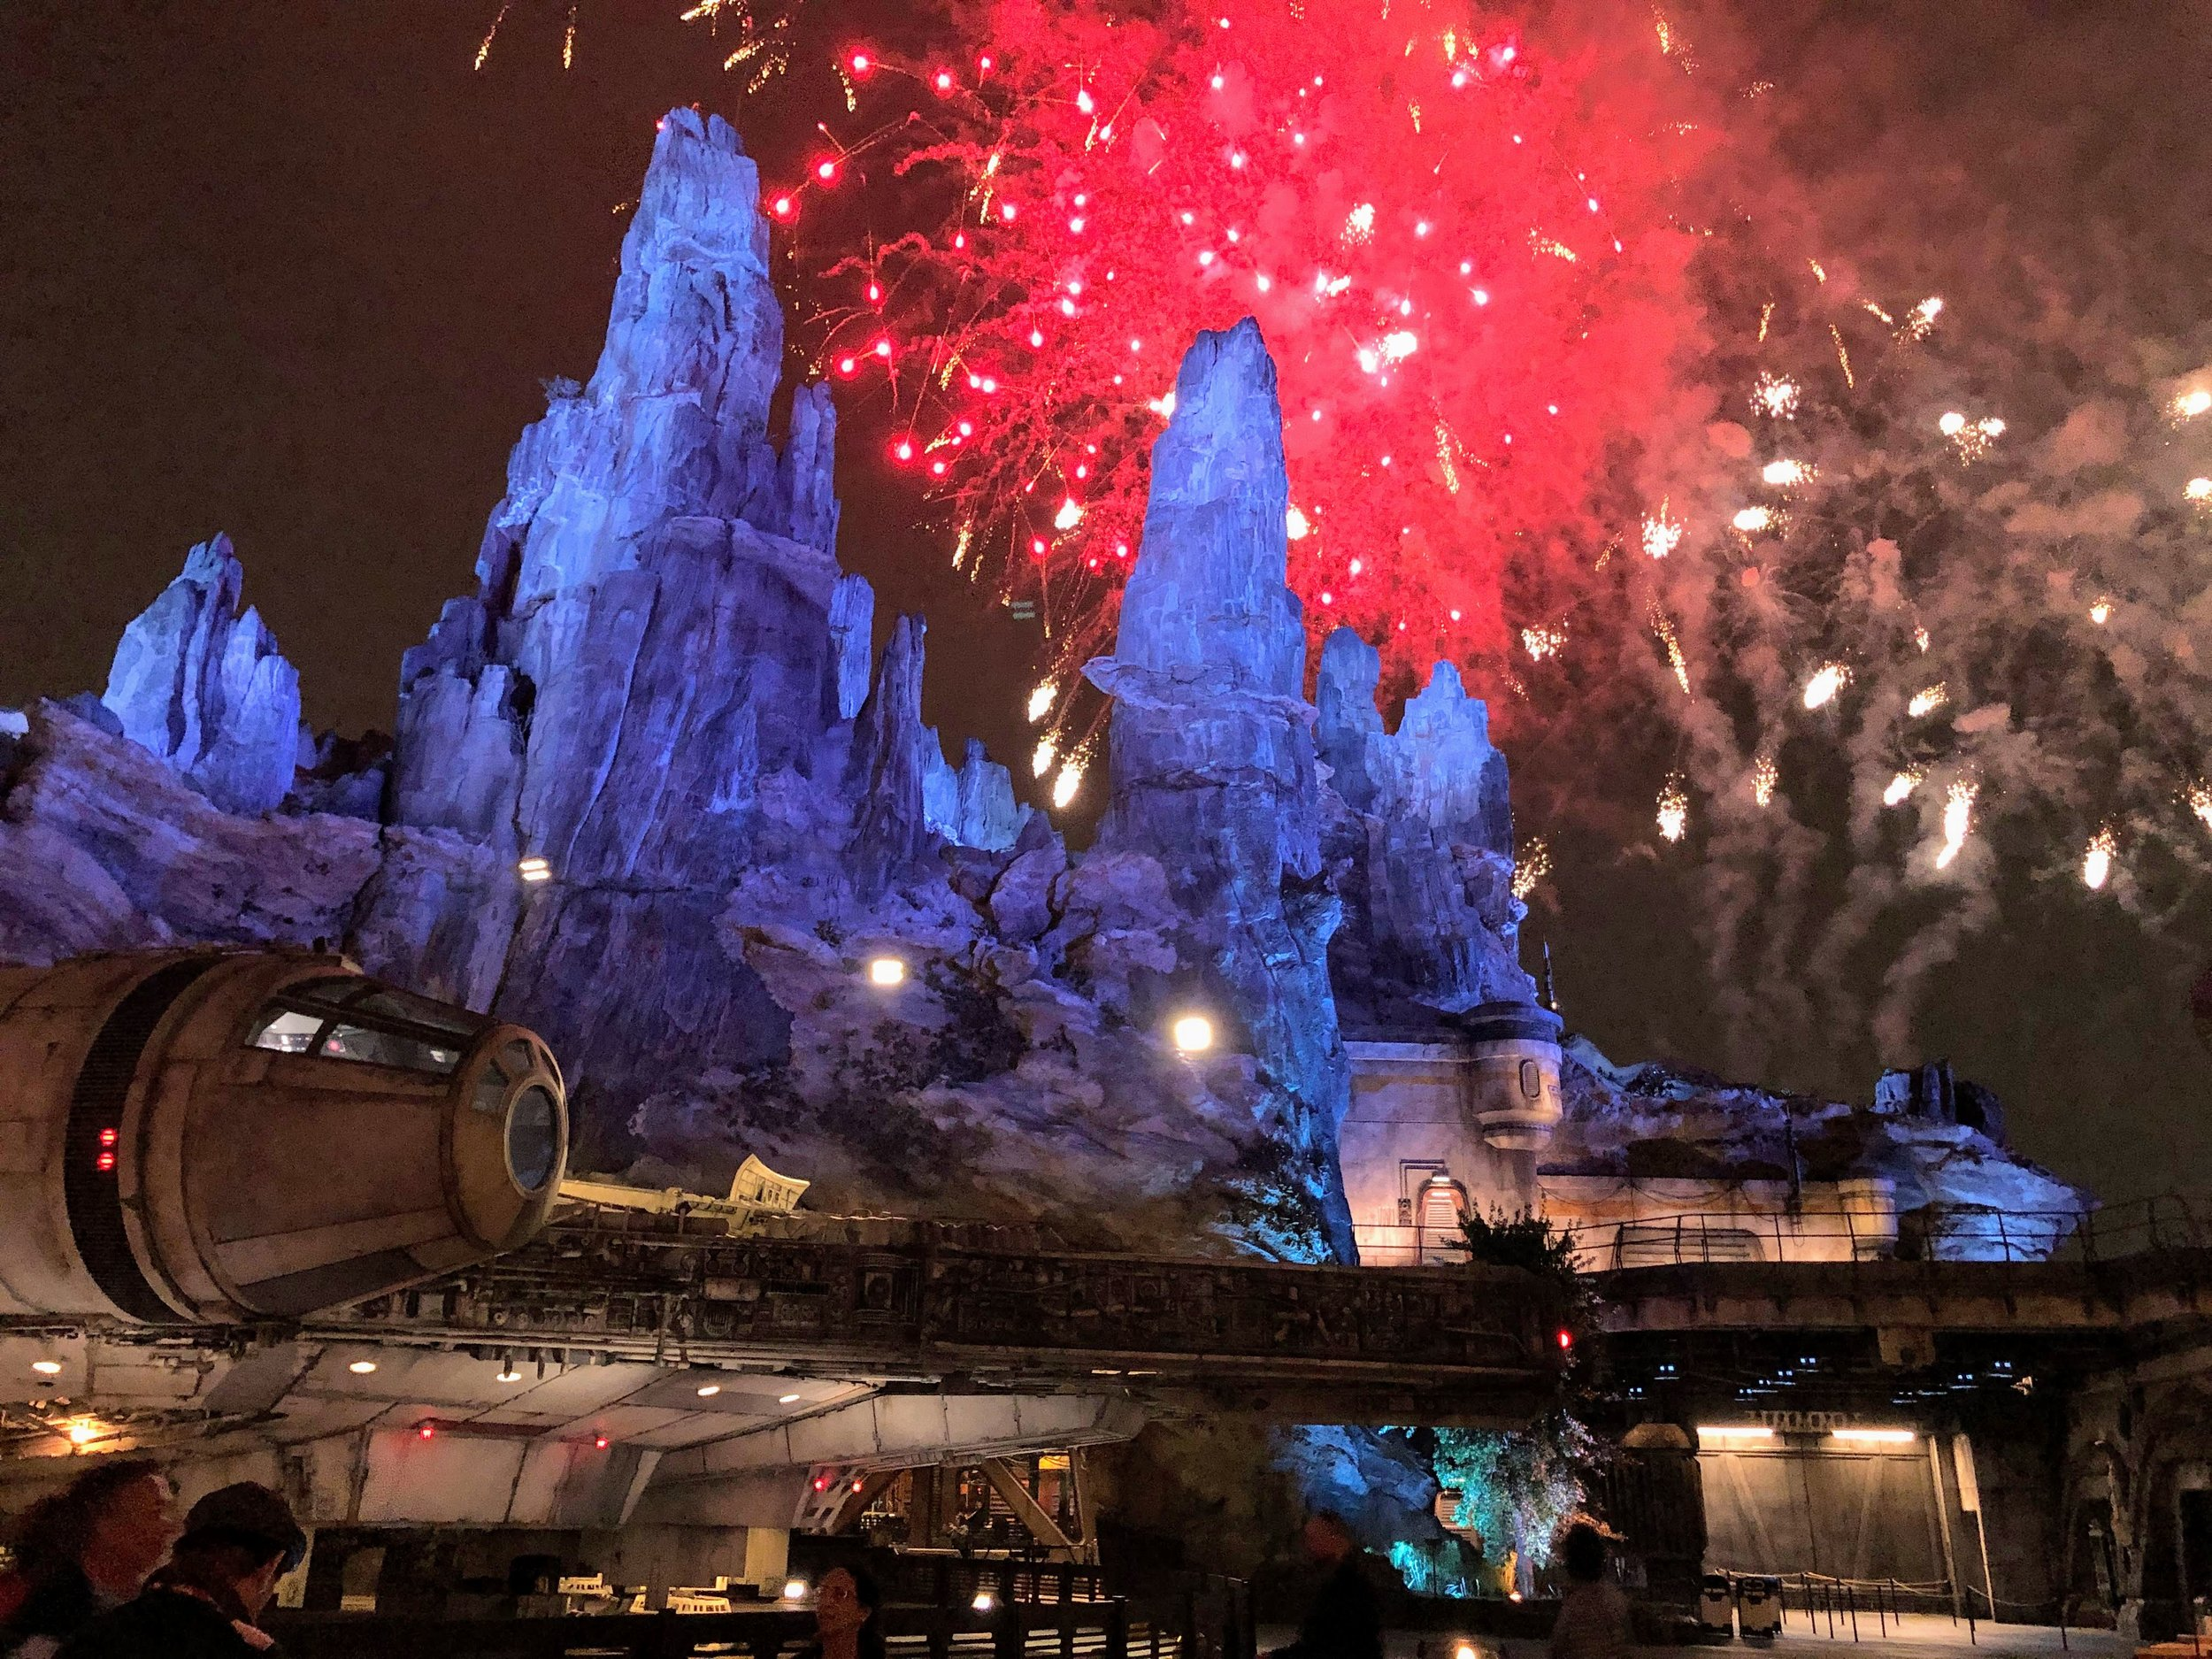 Fireworks in front of the castle? Nah, I'll take this view instead.